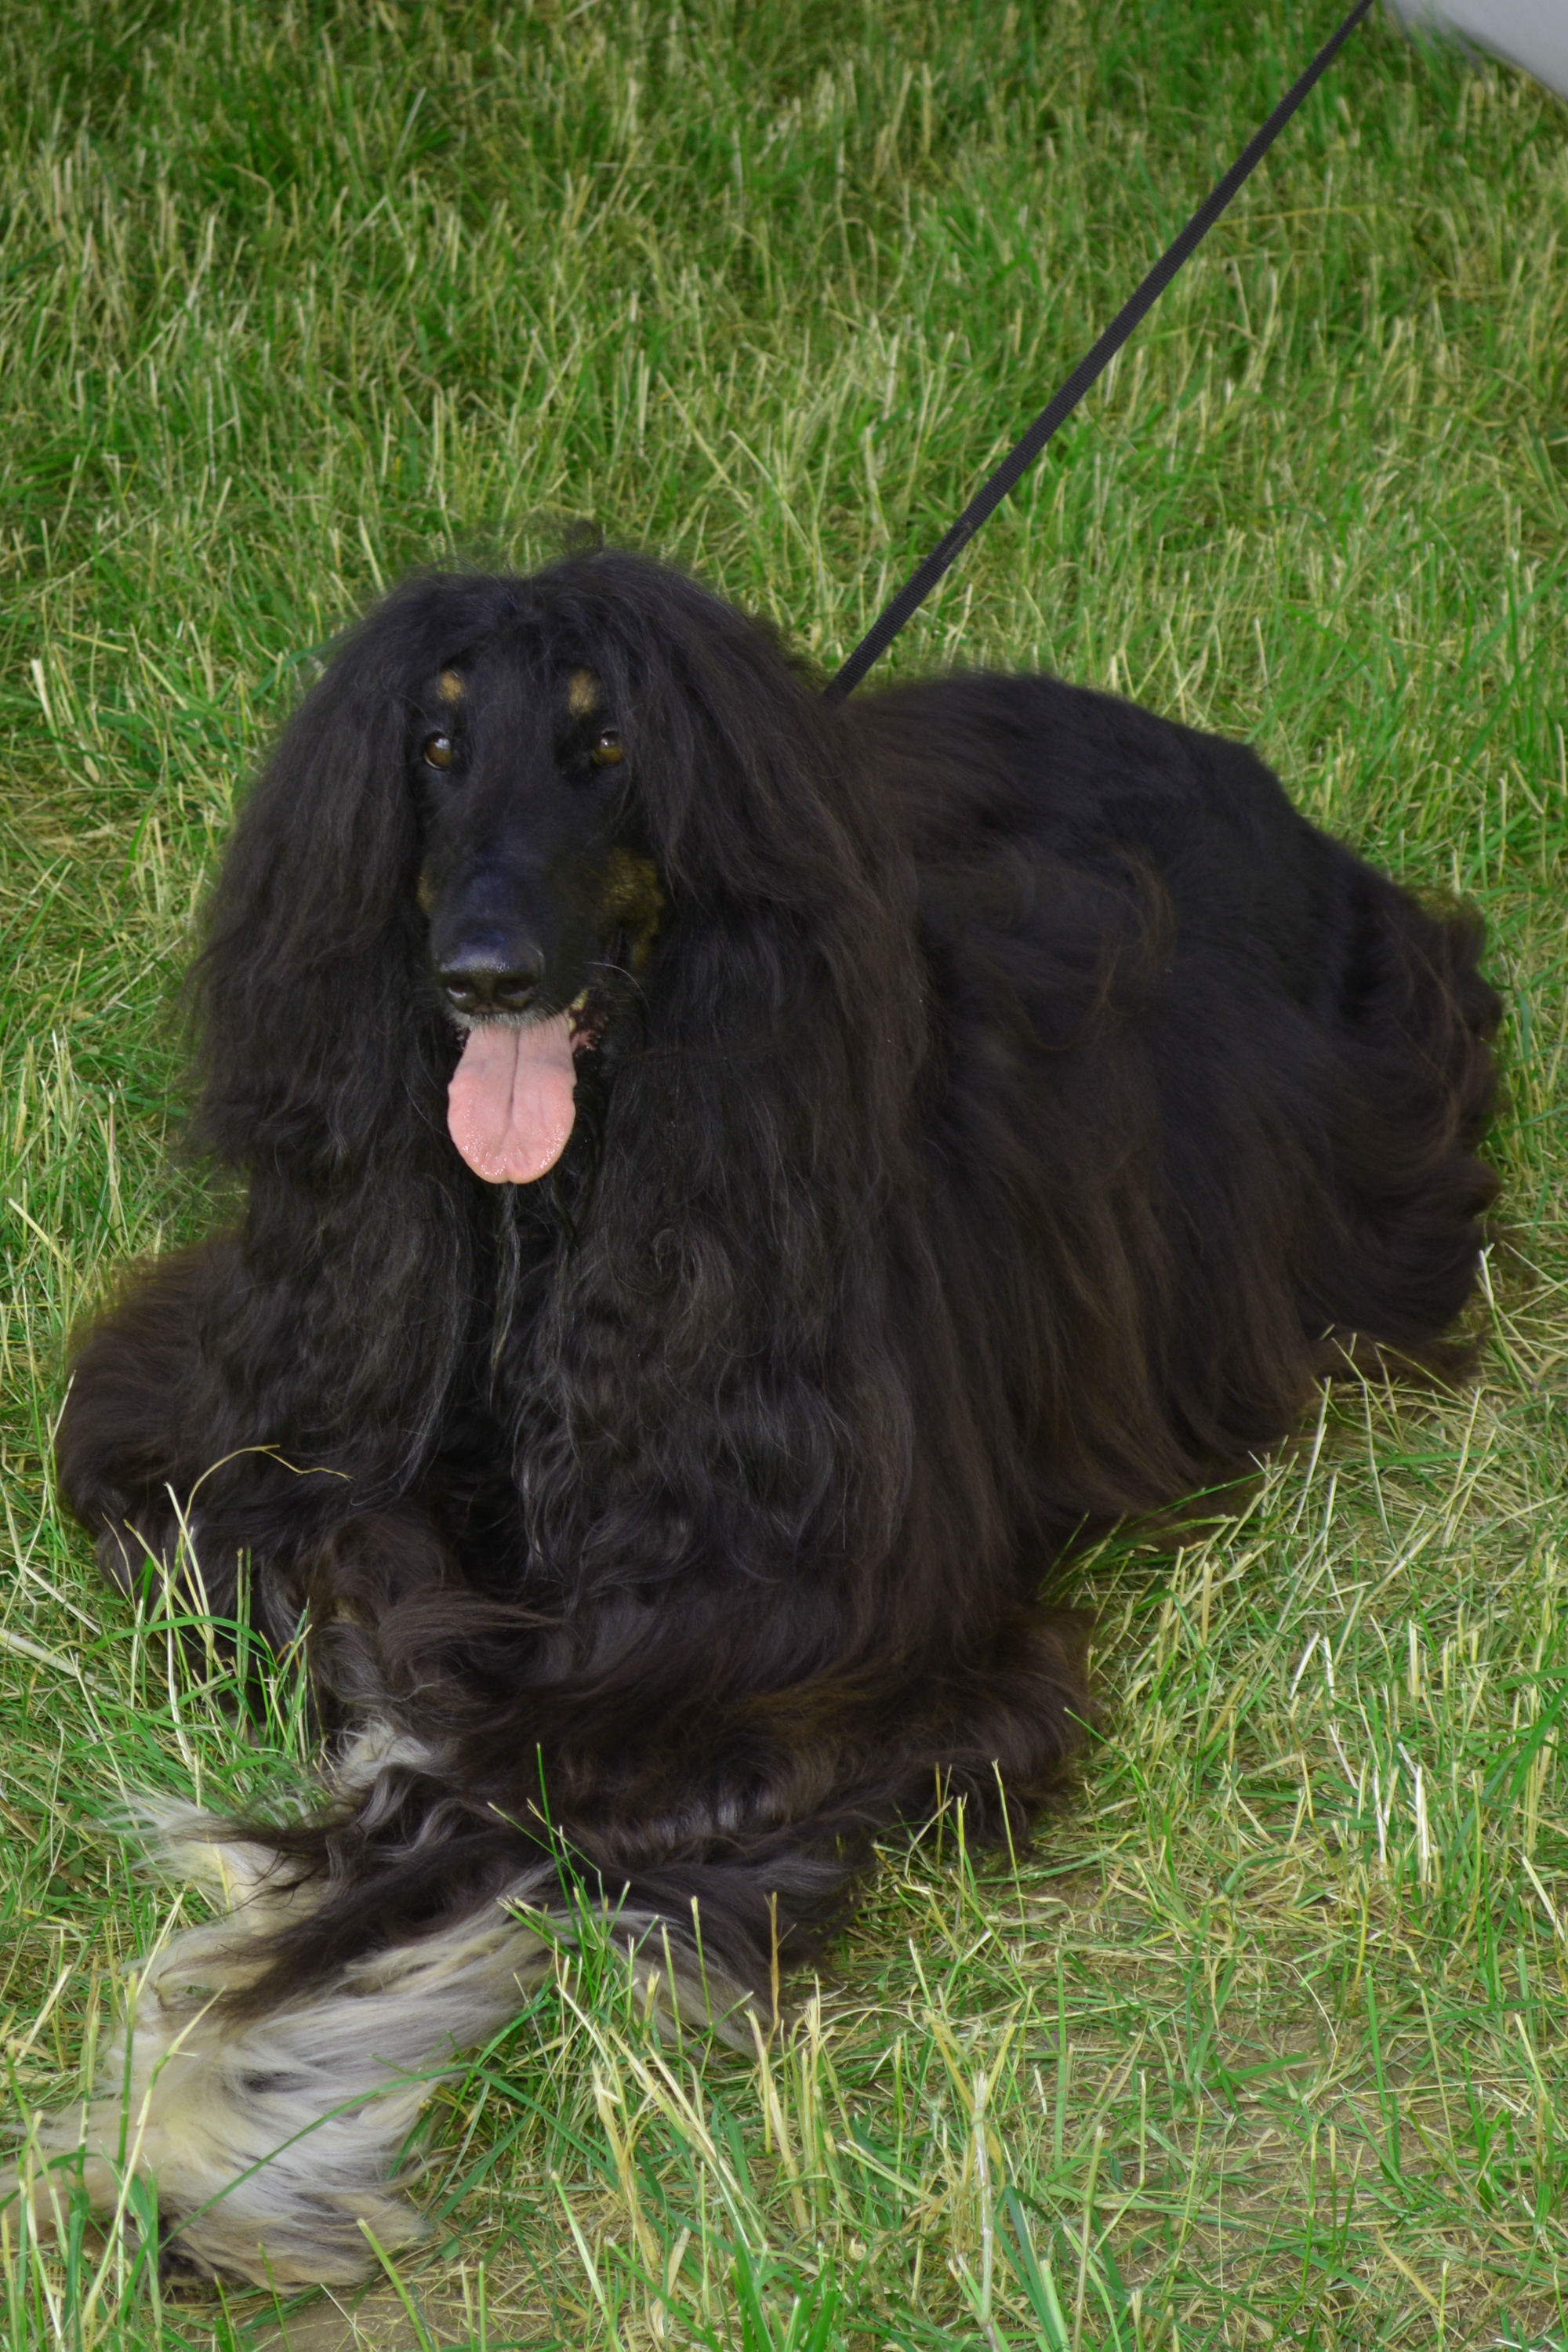 Afghan hound, Adorable, Pedigreed, Large, Looking, HQ Photo